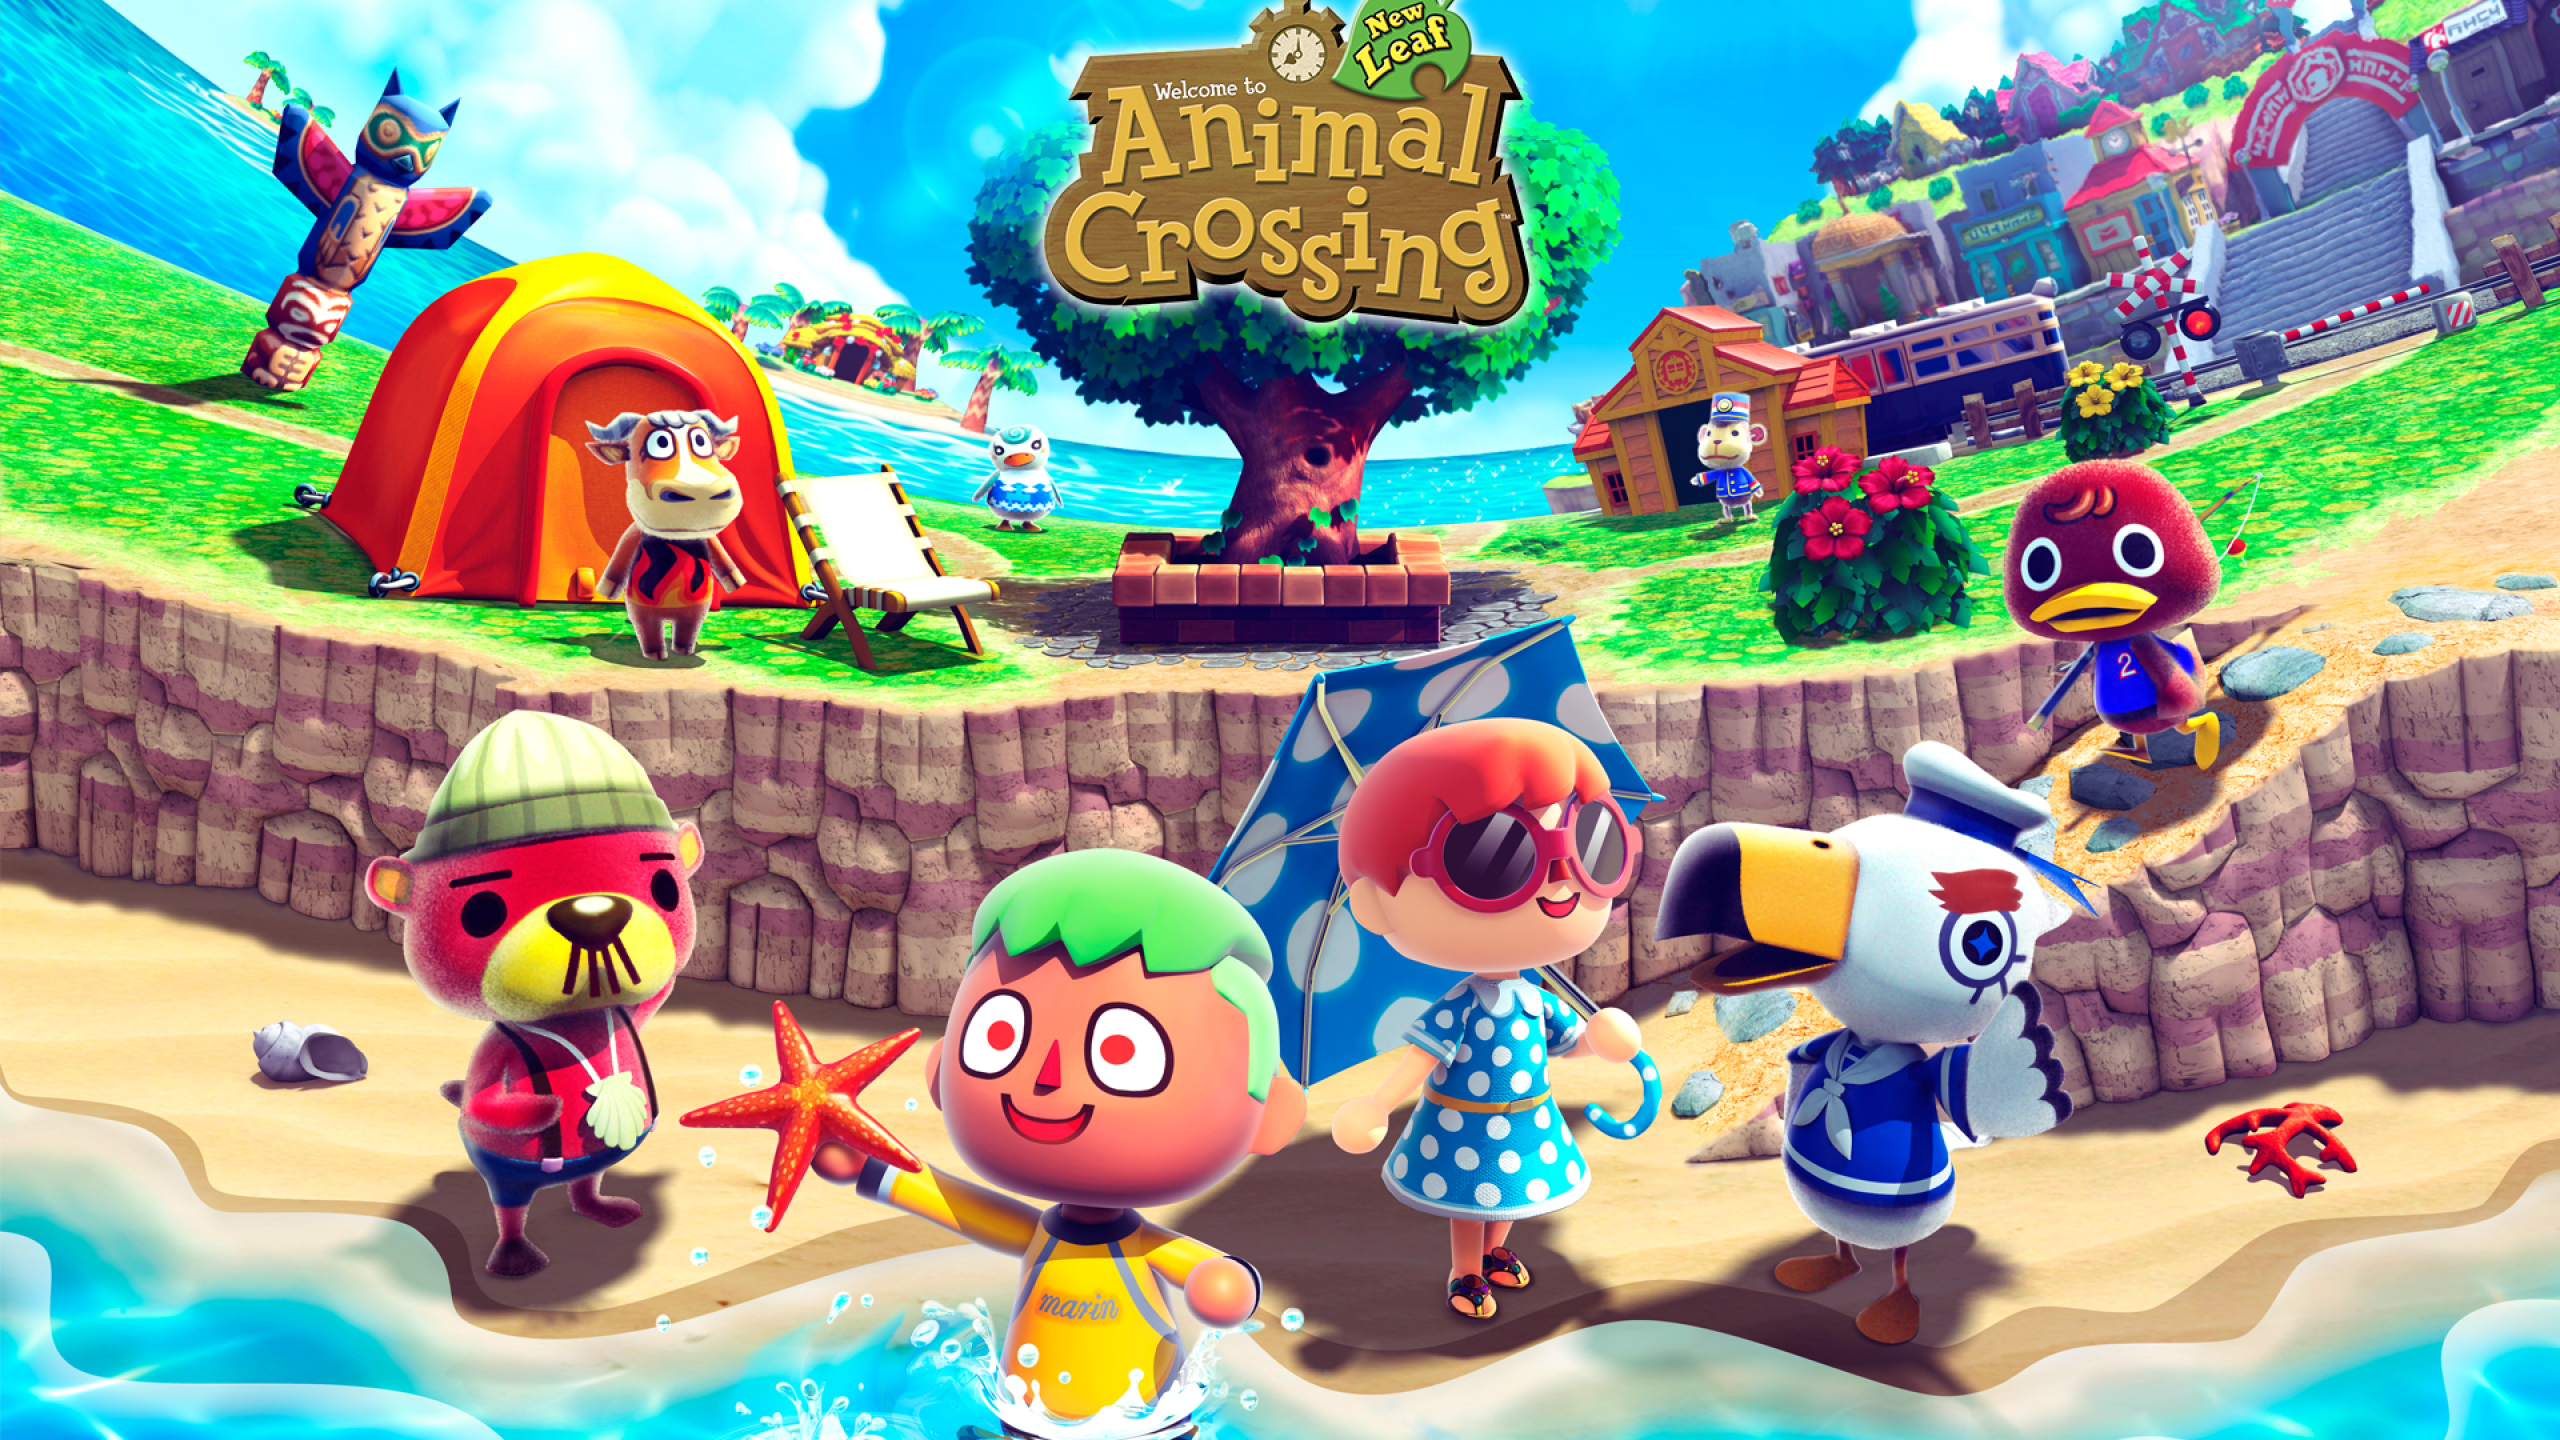 2560x1440 Animal Crossing Nintendo Ead N64 1440p Resolution Wallpaper Hd Games 4k Wallpapers Images Photos And Background